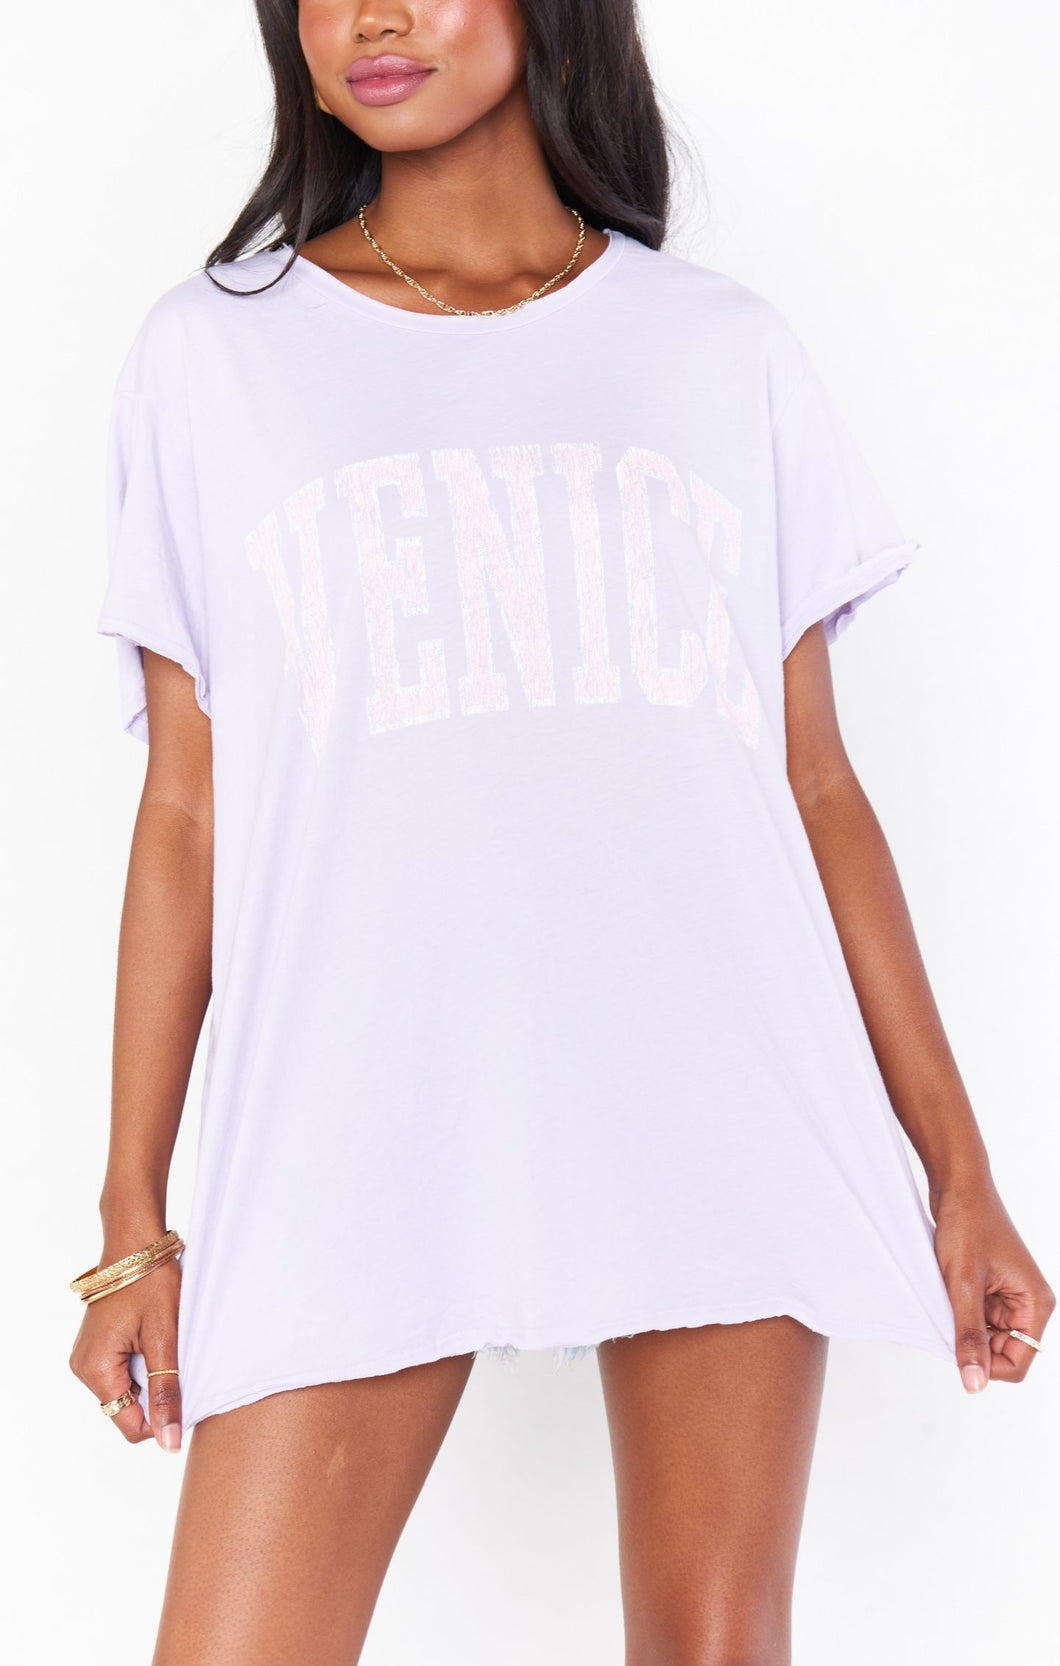 Airport Tee - Venice Graphic